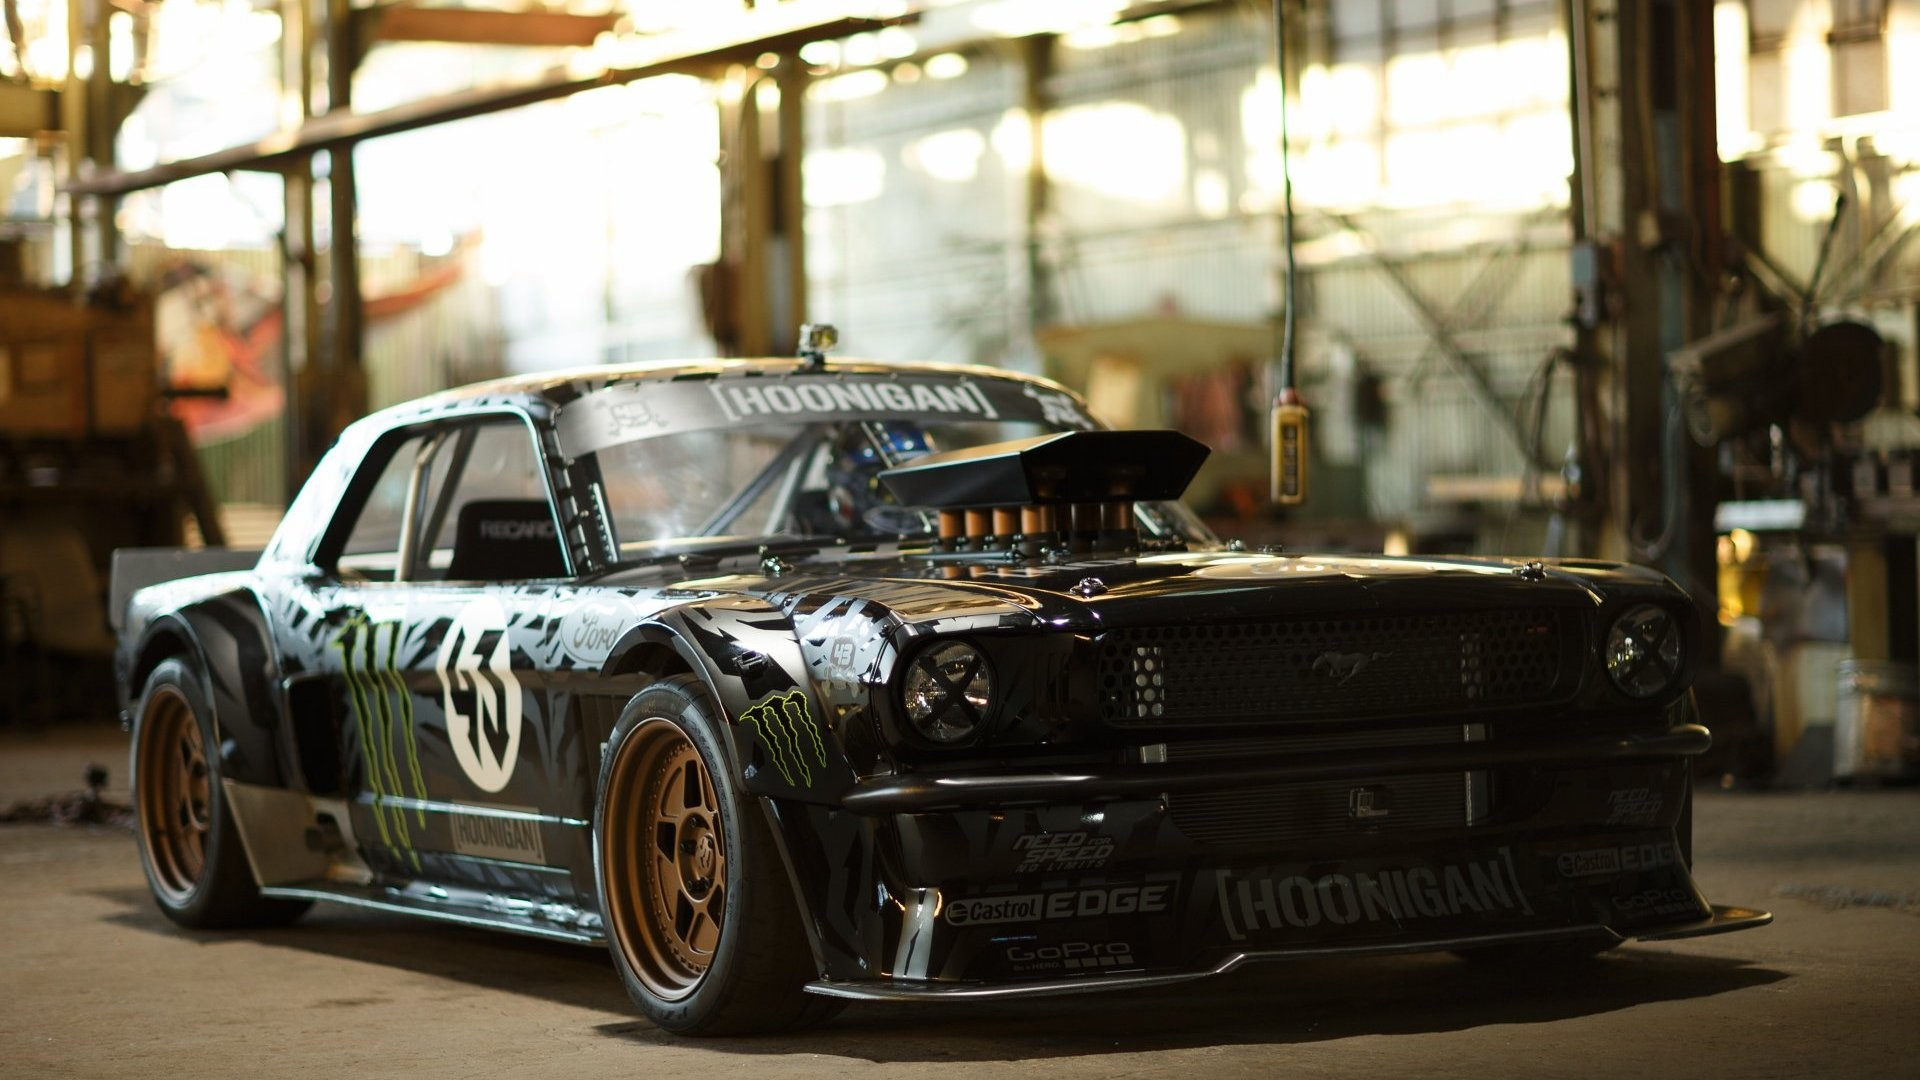 Hoonigan wallpapers 76 images - Hoonicorn specs ...